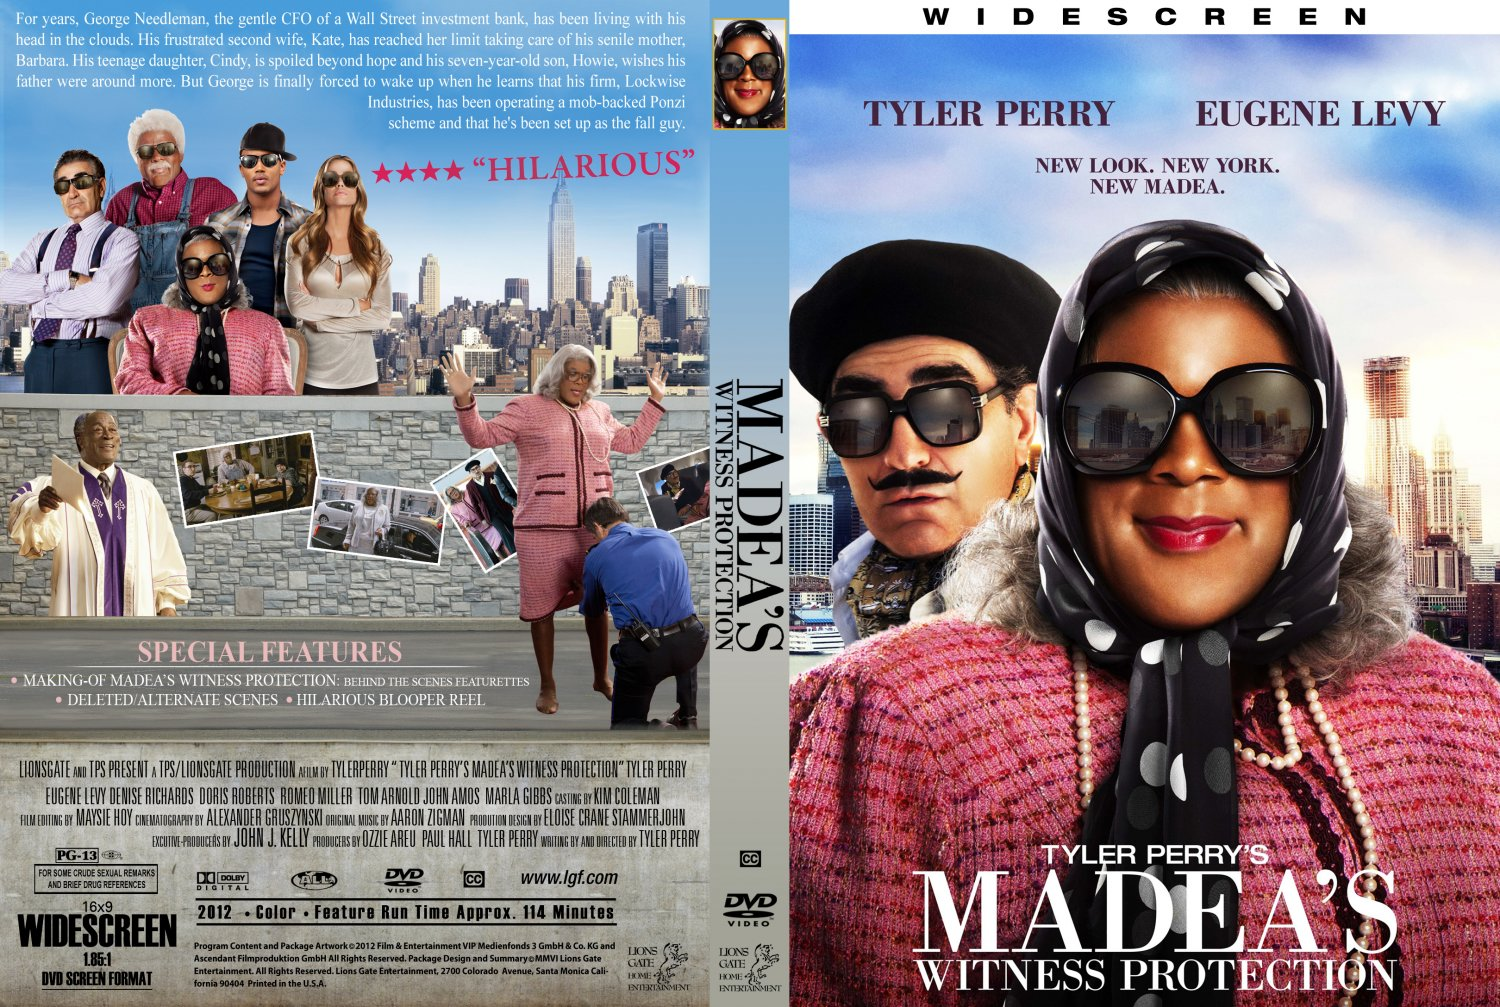 madeas witness protection dvd cover - photo #1